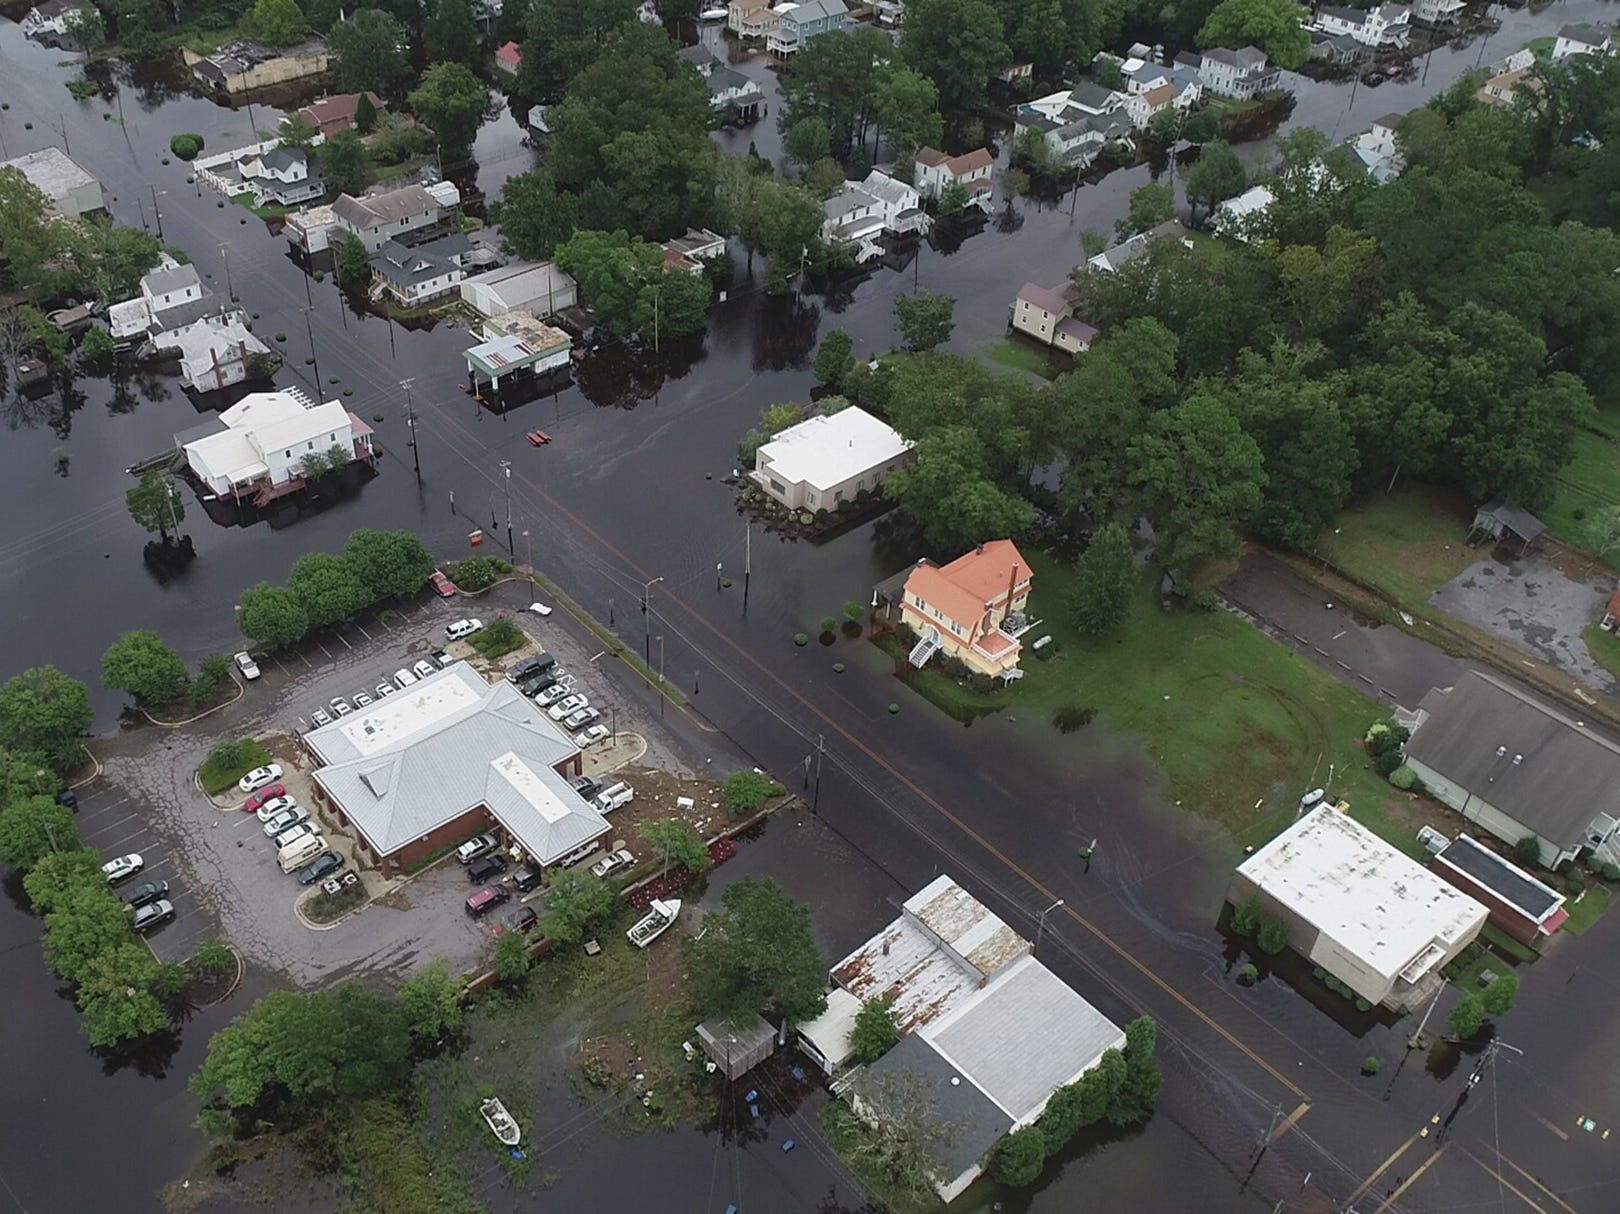 Sept. 15, 2018: Drone photo of local flooding in Belhaven, N.C. Hurricane Florence brought heavy rain to the area flooding streets and homes.